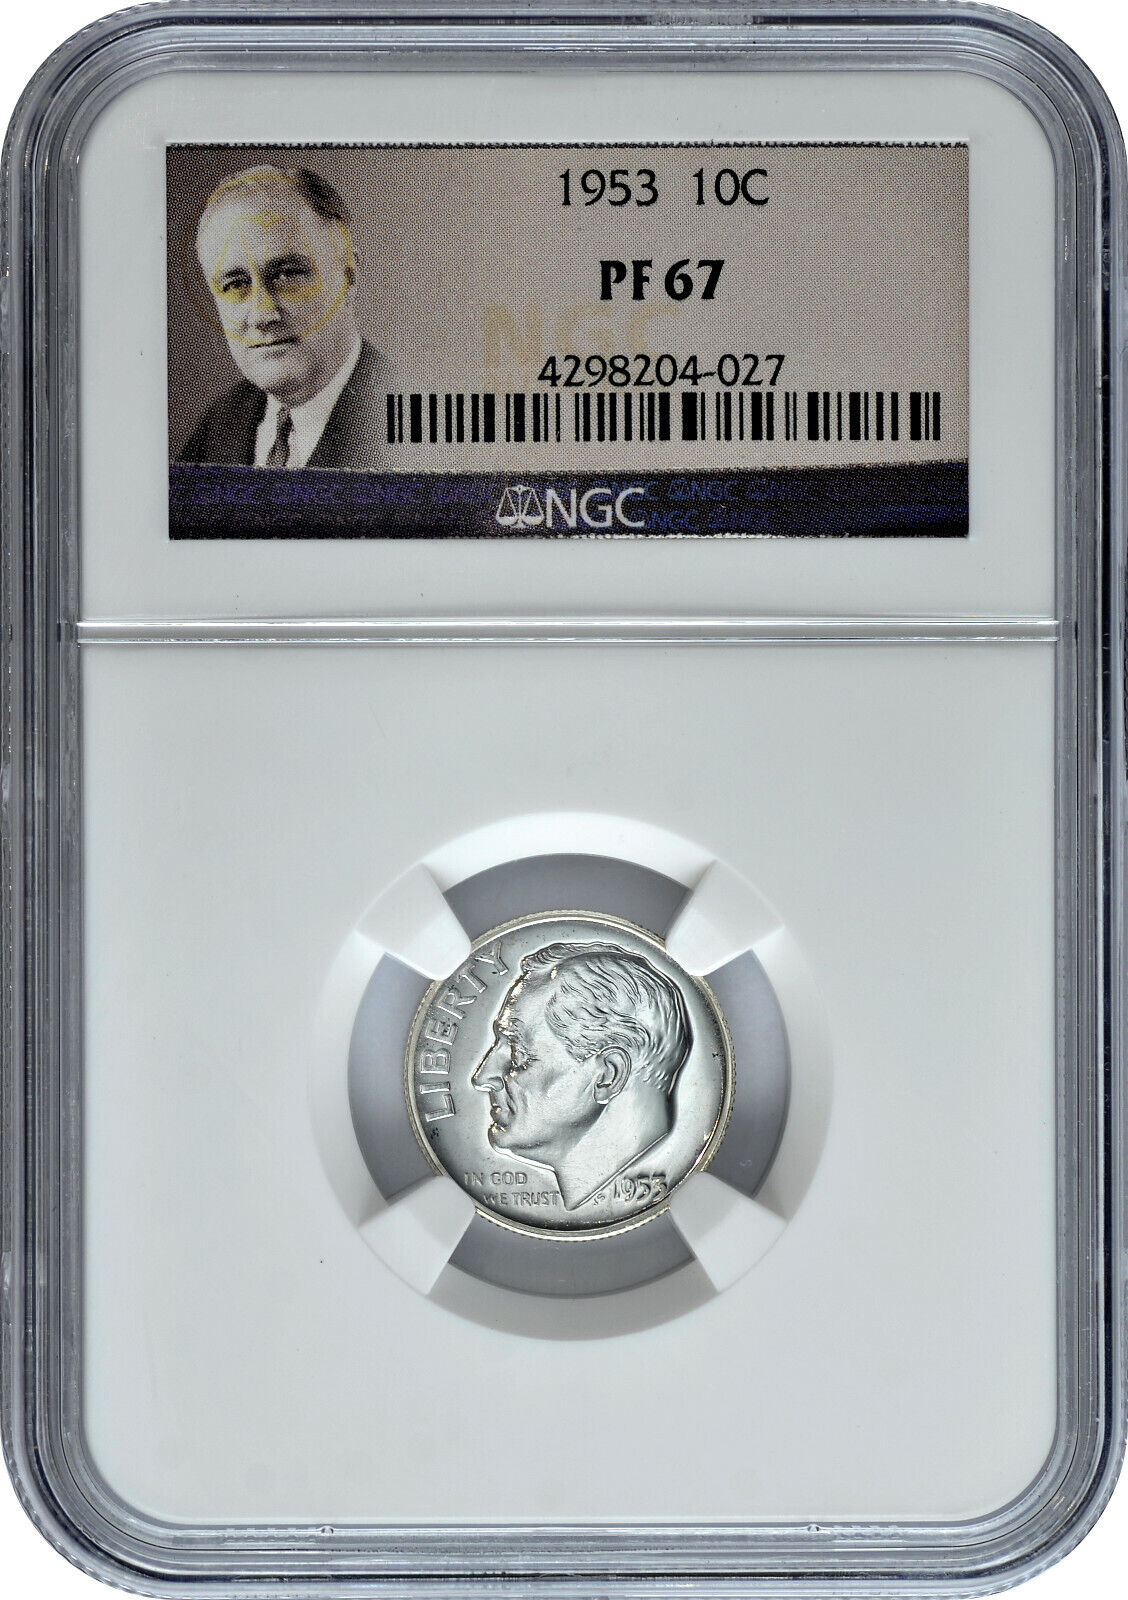 1953 10C Proof Silver Roosevelt Dime NGC PF 67